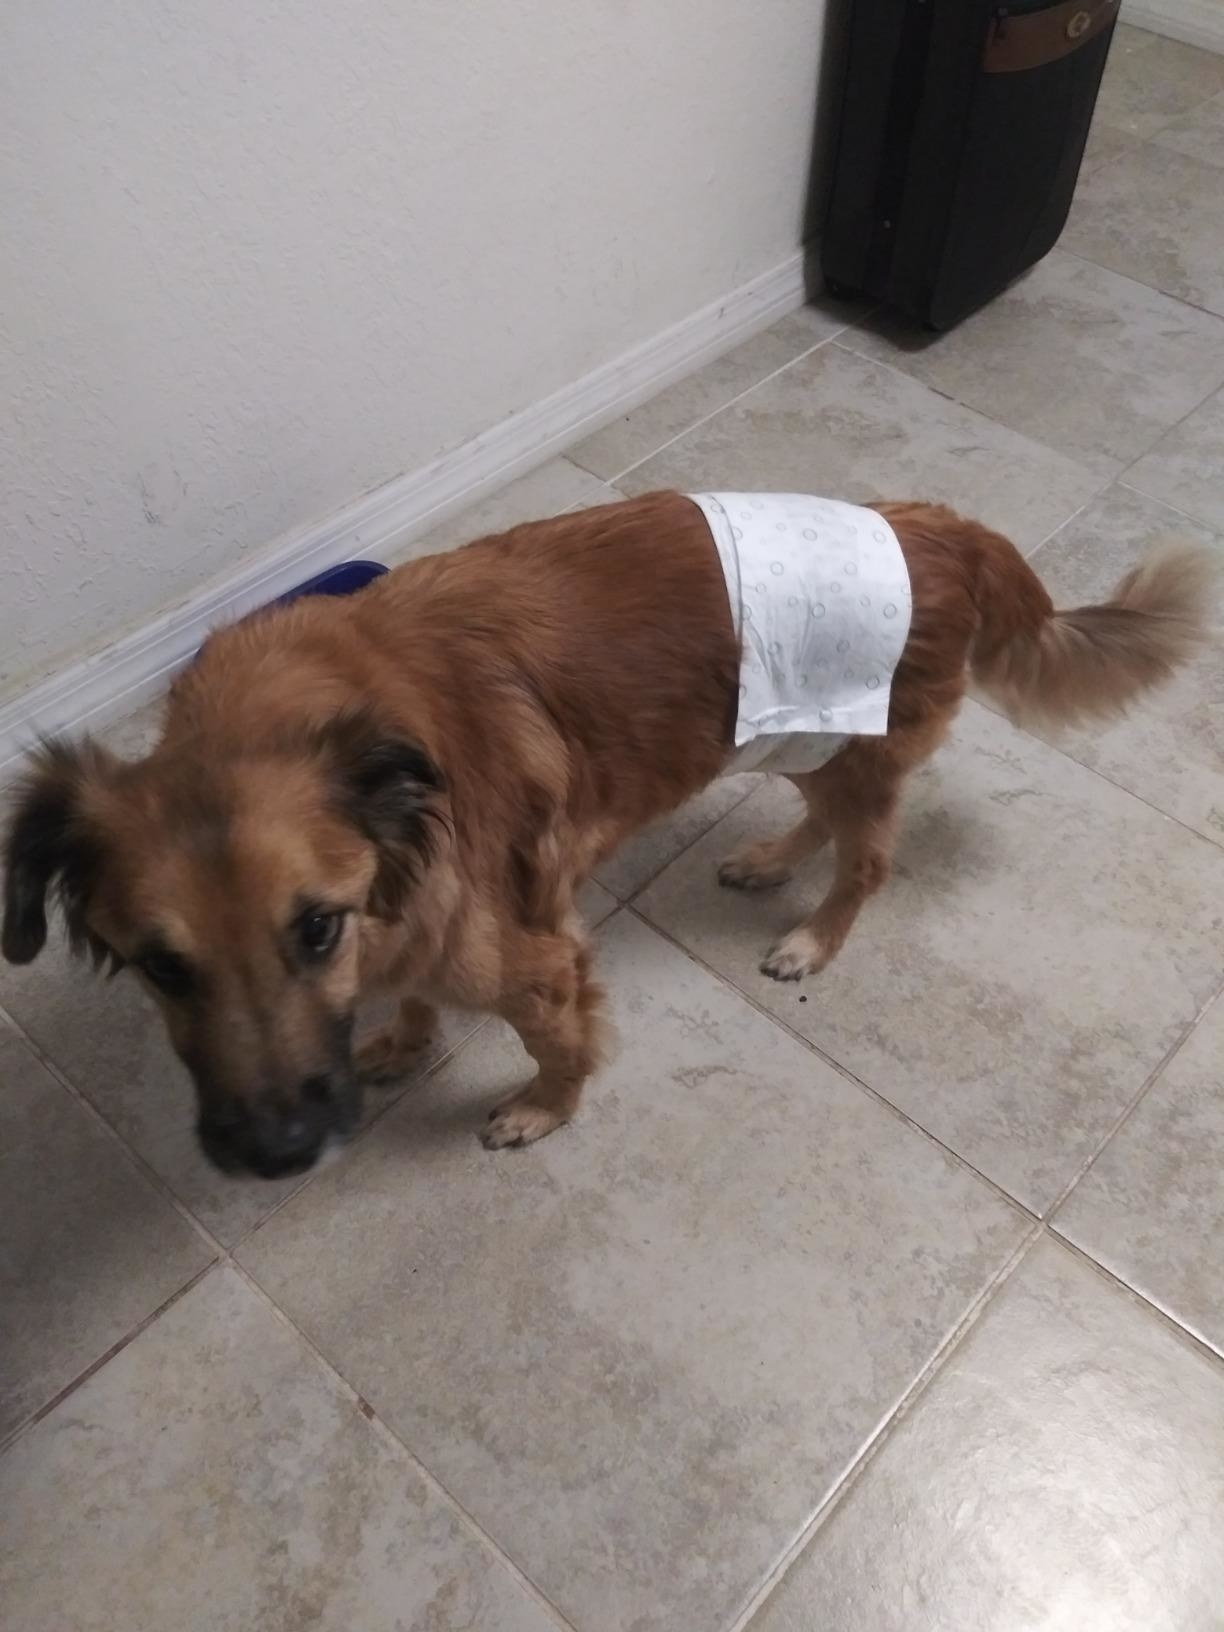 A dog wearing the wraps, which cover the belly area but leave the backside free and open